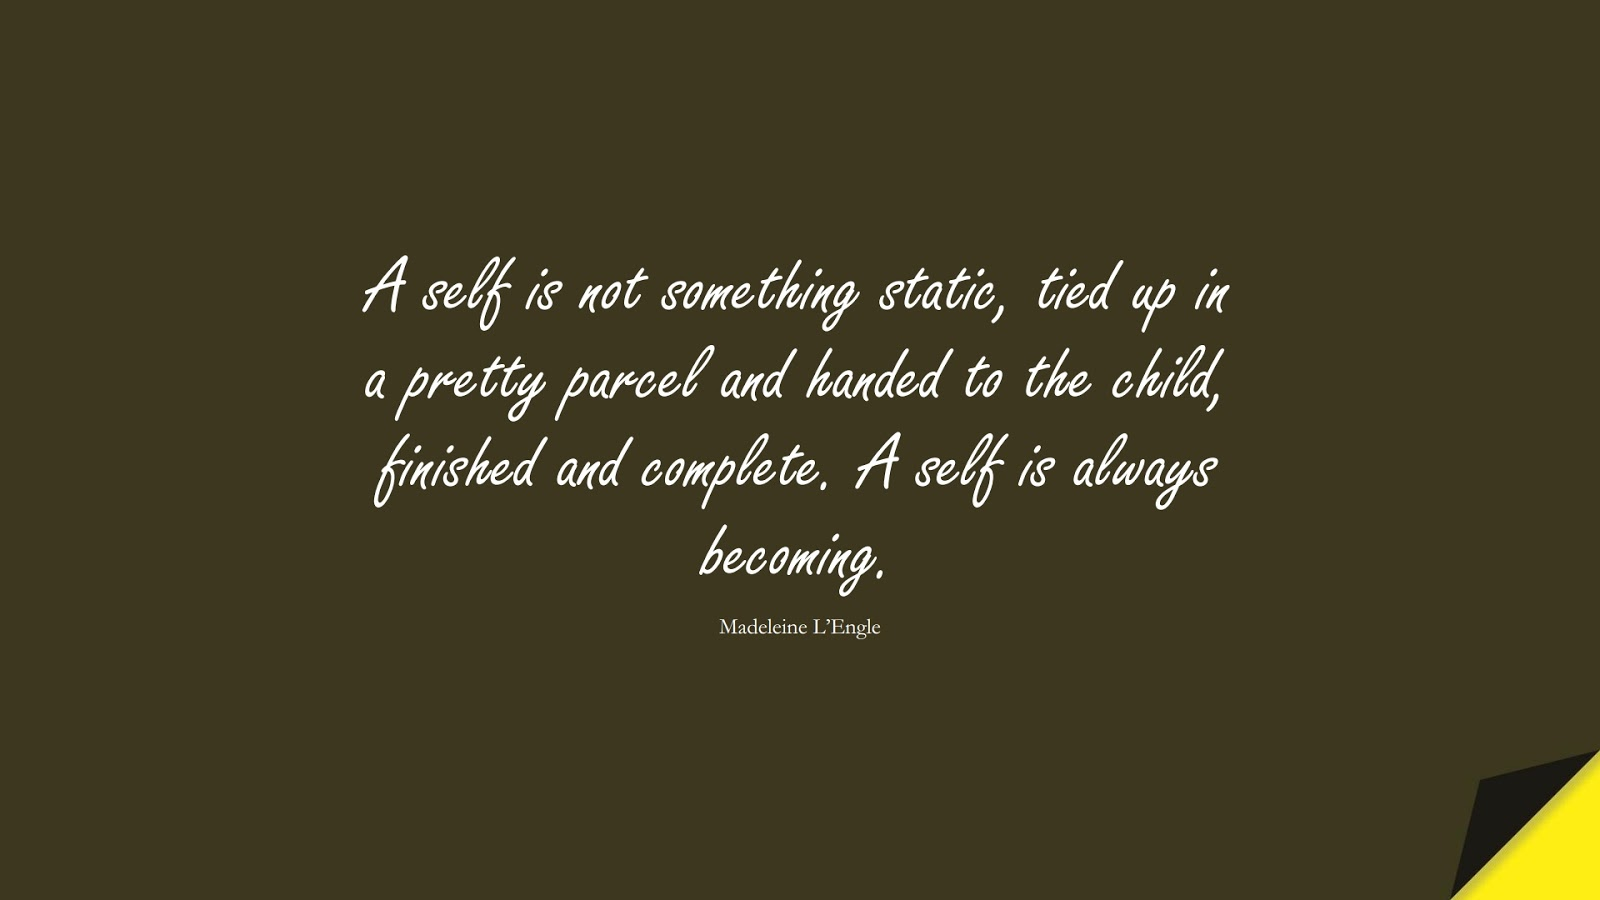 A self is not something static, tied up in a pretty parcel and handed to the child, finished and complete. A self is always becoming. (Madeleine L'Engle);  #BeYourselfQuotes